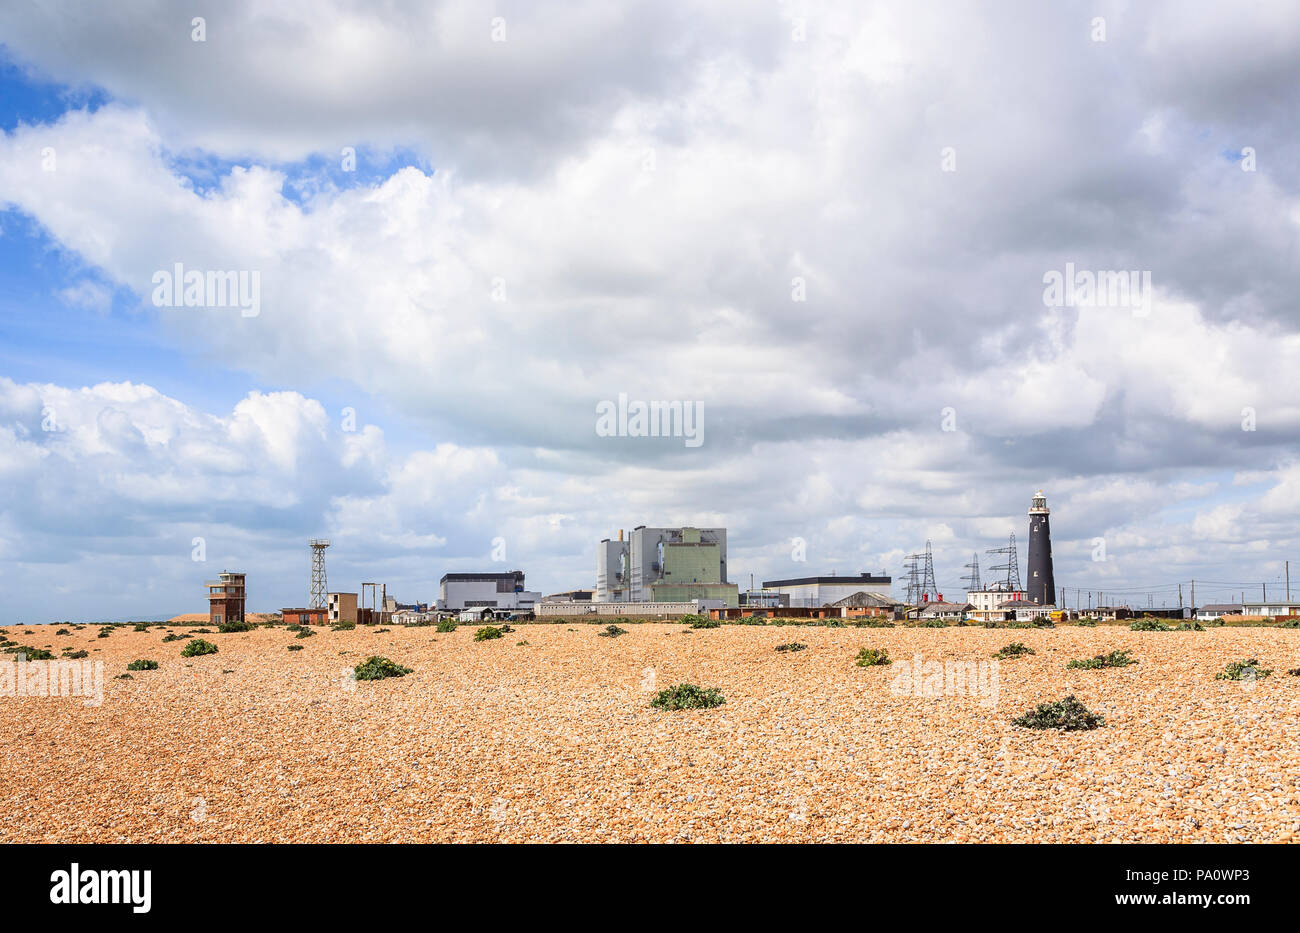 Dungeness B Nuclear Power Station and lighthouse at Dungeness, Lydd, Shepway district, Kent behind the gravel beach - Stock Image